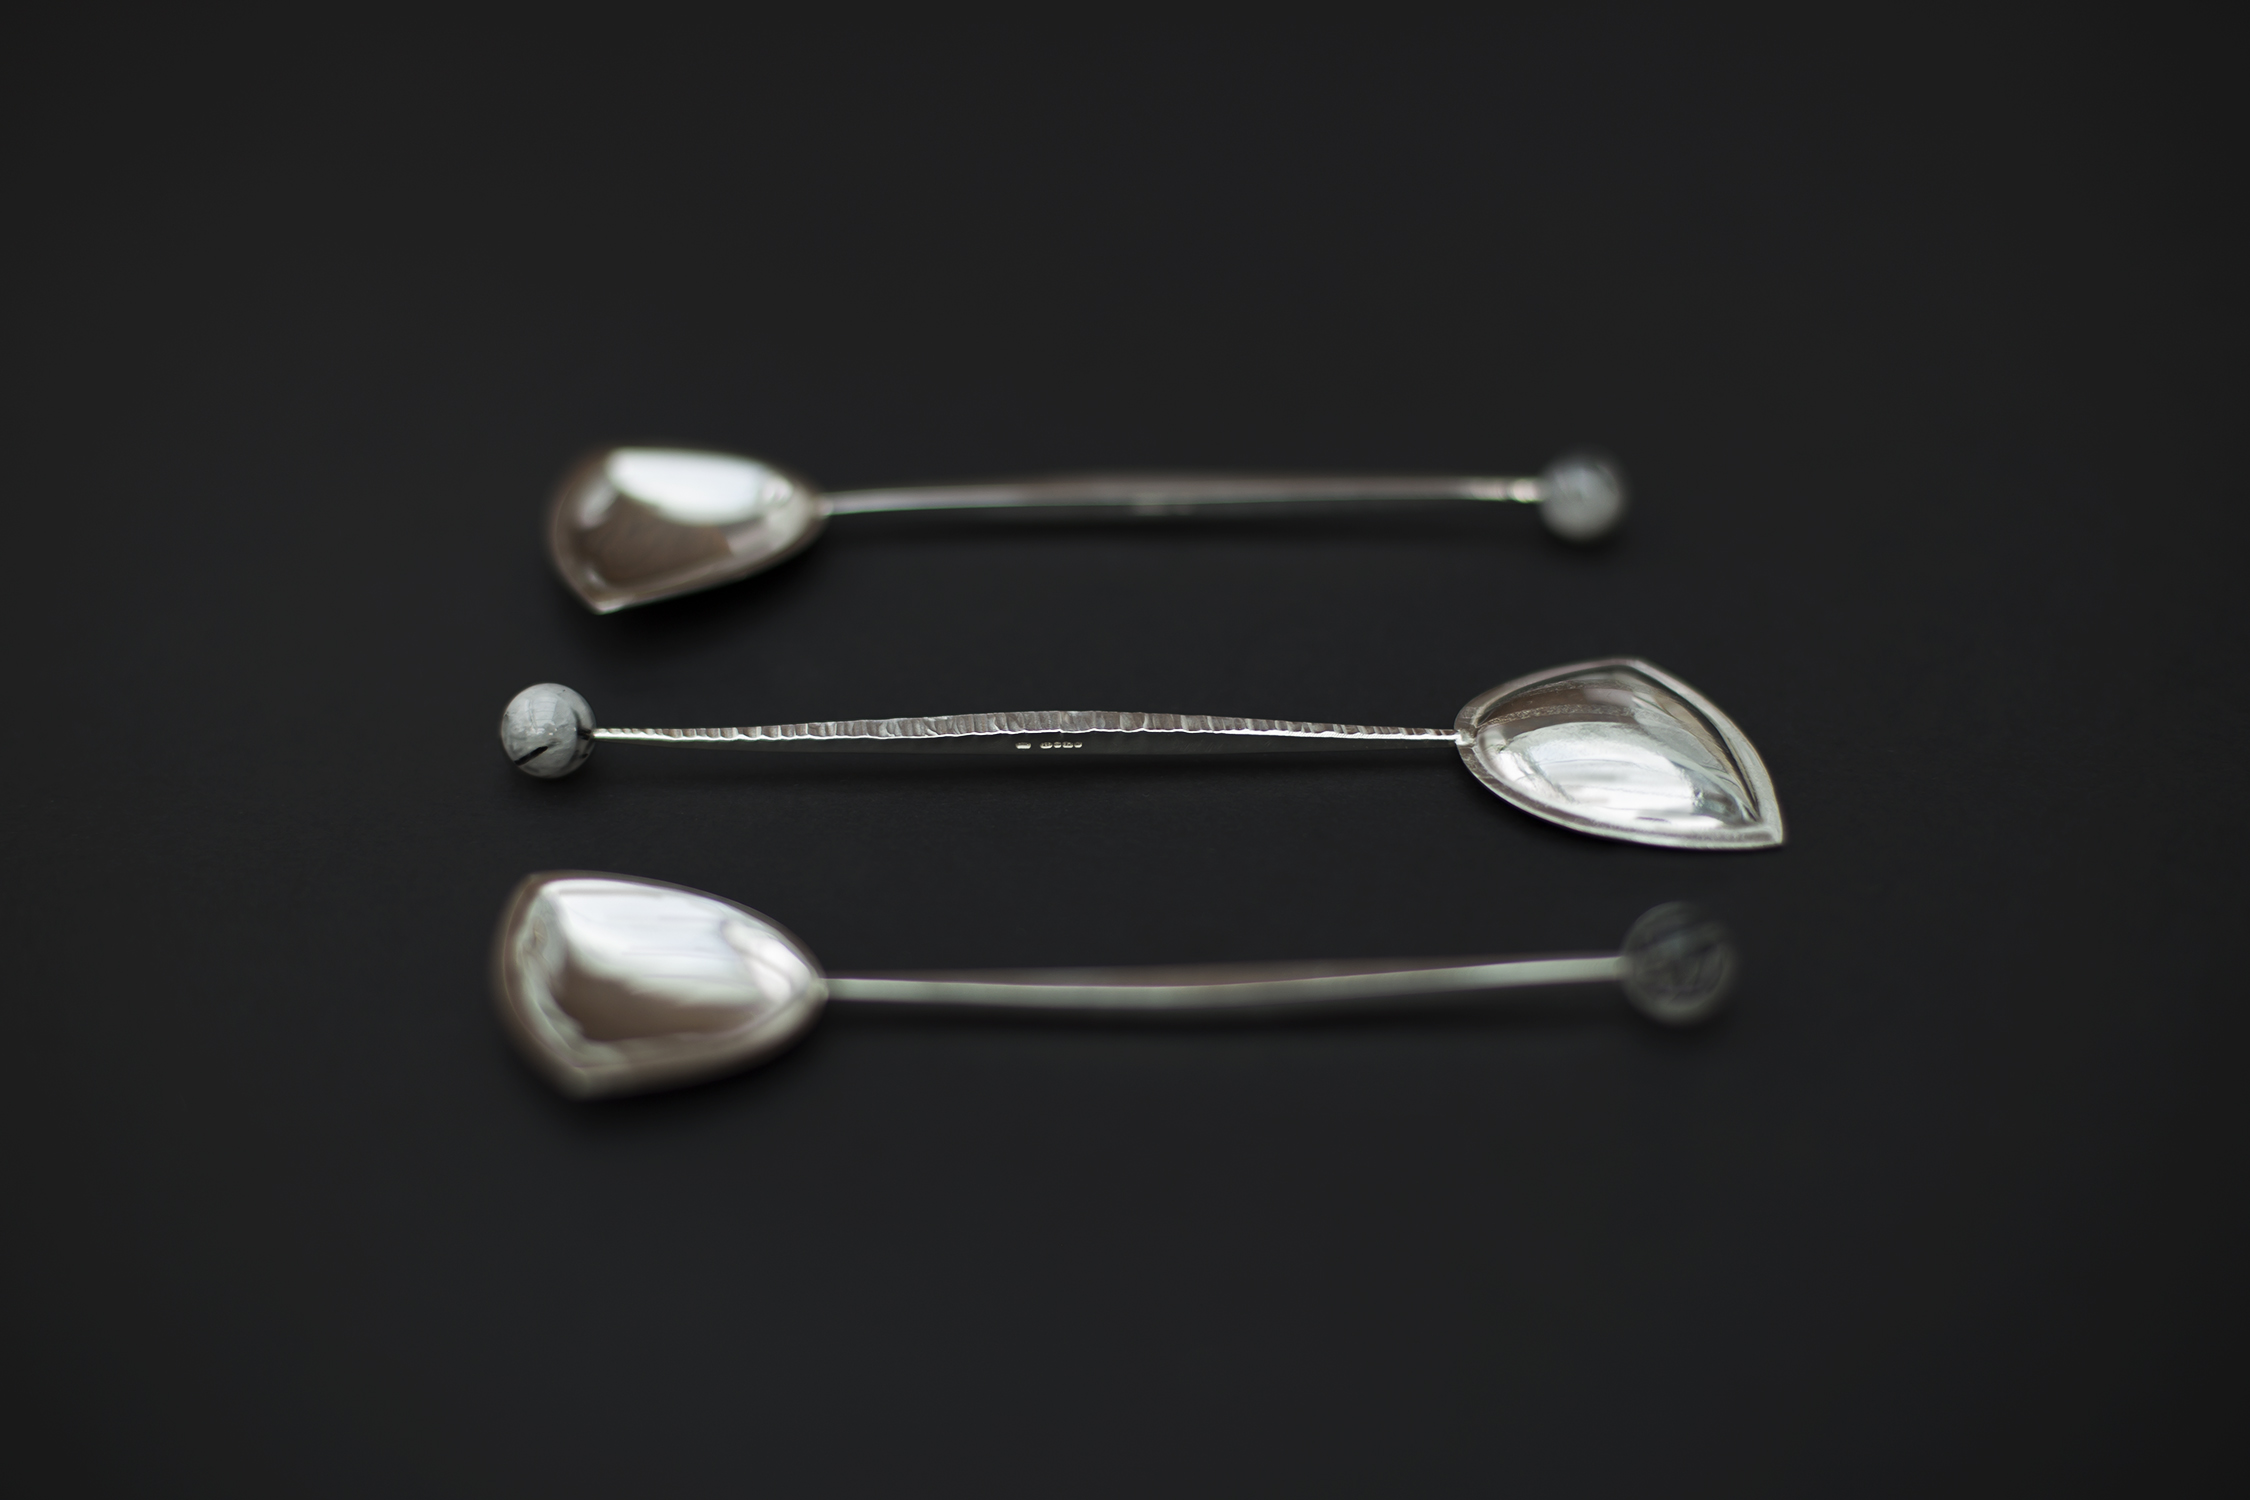 Textured silver spoons